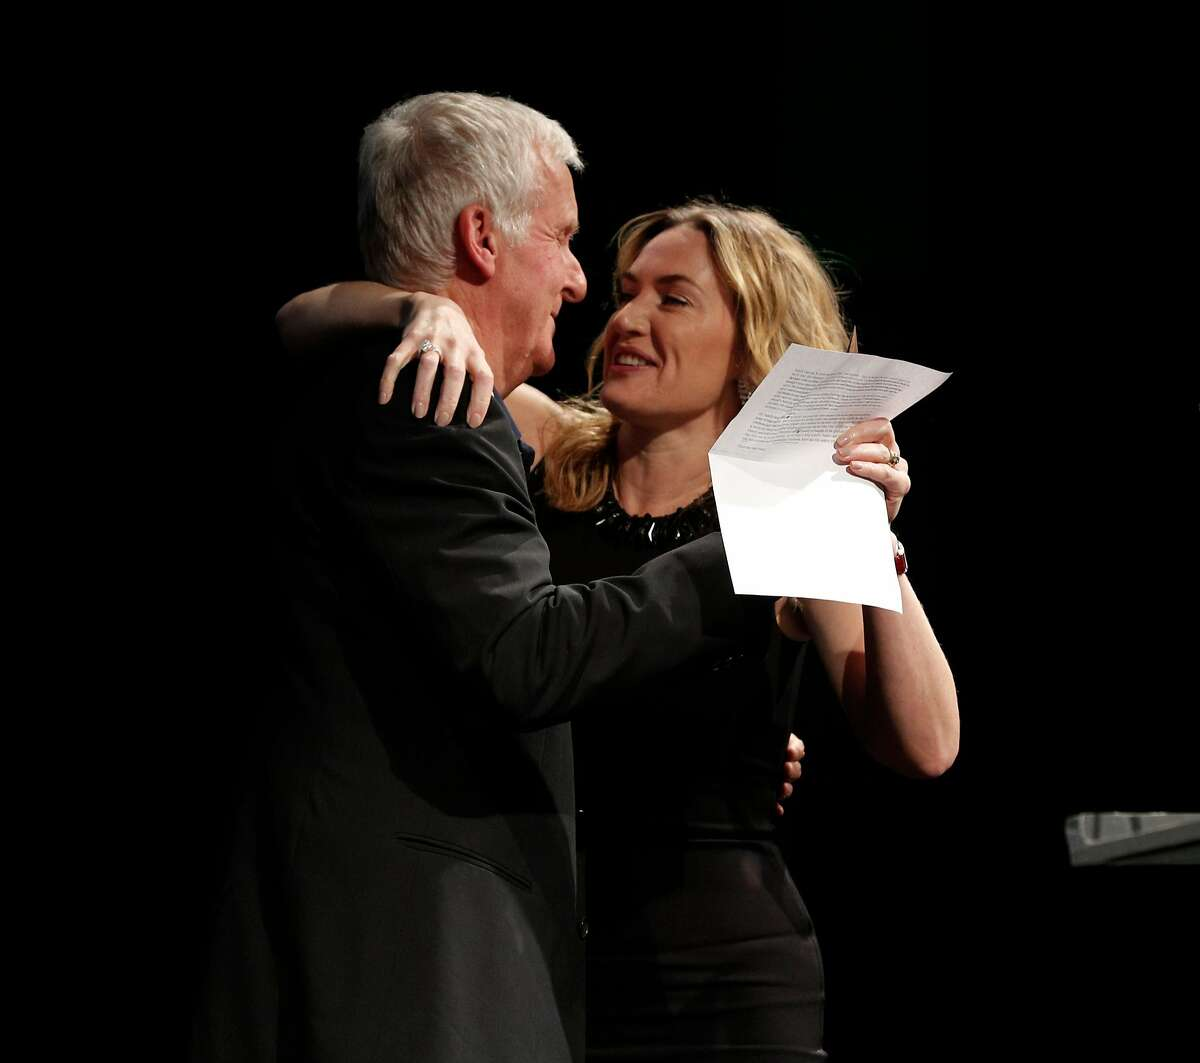 Kate Winslet hugs James Cameron as he presents her with the Peter J. Owens Award for Acting during the SFFILM Awards Night at the Palace of Fine Arts Exhibition Center in San Francisco, Calif., on Tuesday, December 5, 2017. Kathryn Bigelow was awarded the Irving M. Levin Award for Film Direction, Kate Winslet the Peter J. Owens Award for Acting, and Emily V. Gordon and Kumail Nanjiani the Kanbar Award for Storytelling.